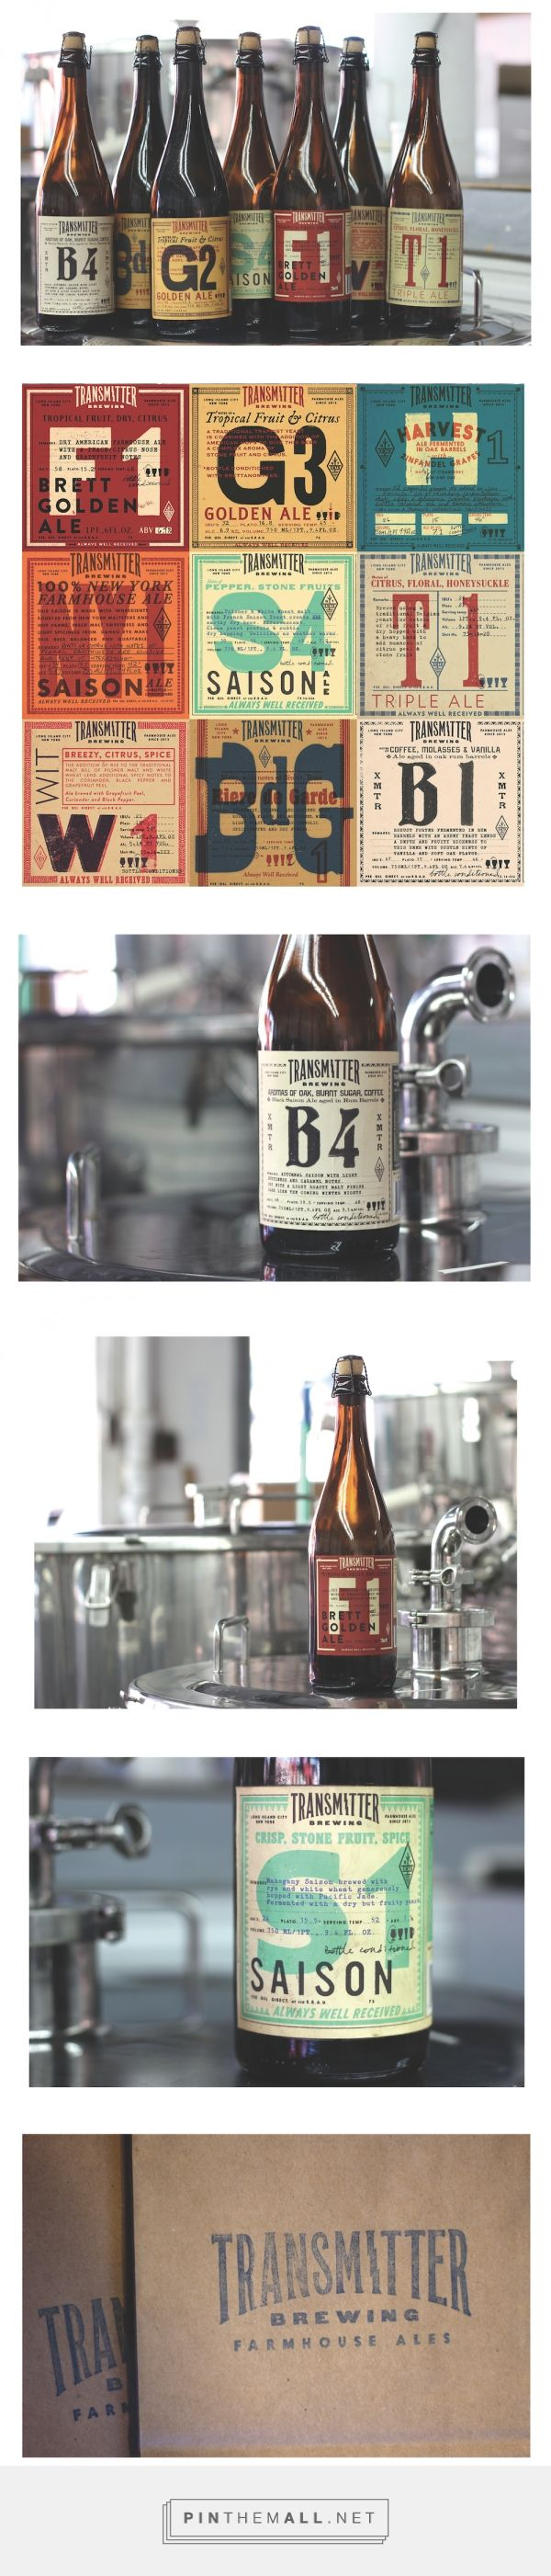 Transmitter: A Beer Packaging Design Inspired by Ham Radio - Print Magazine  http://www.printmag.com/design-inspiration/beer-packaging-design-ham-radio/